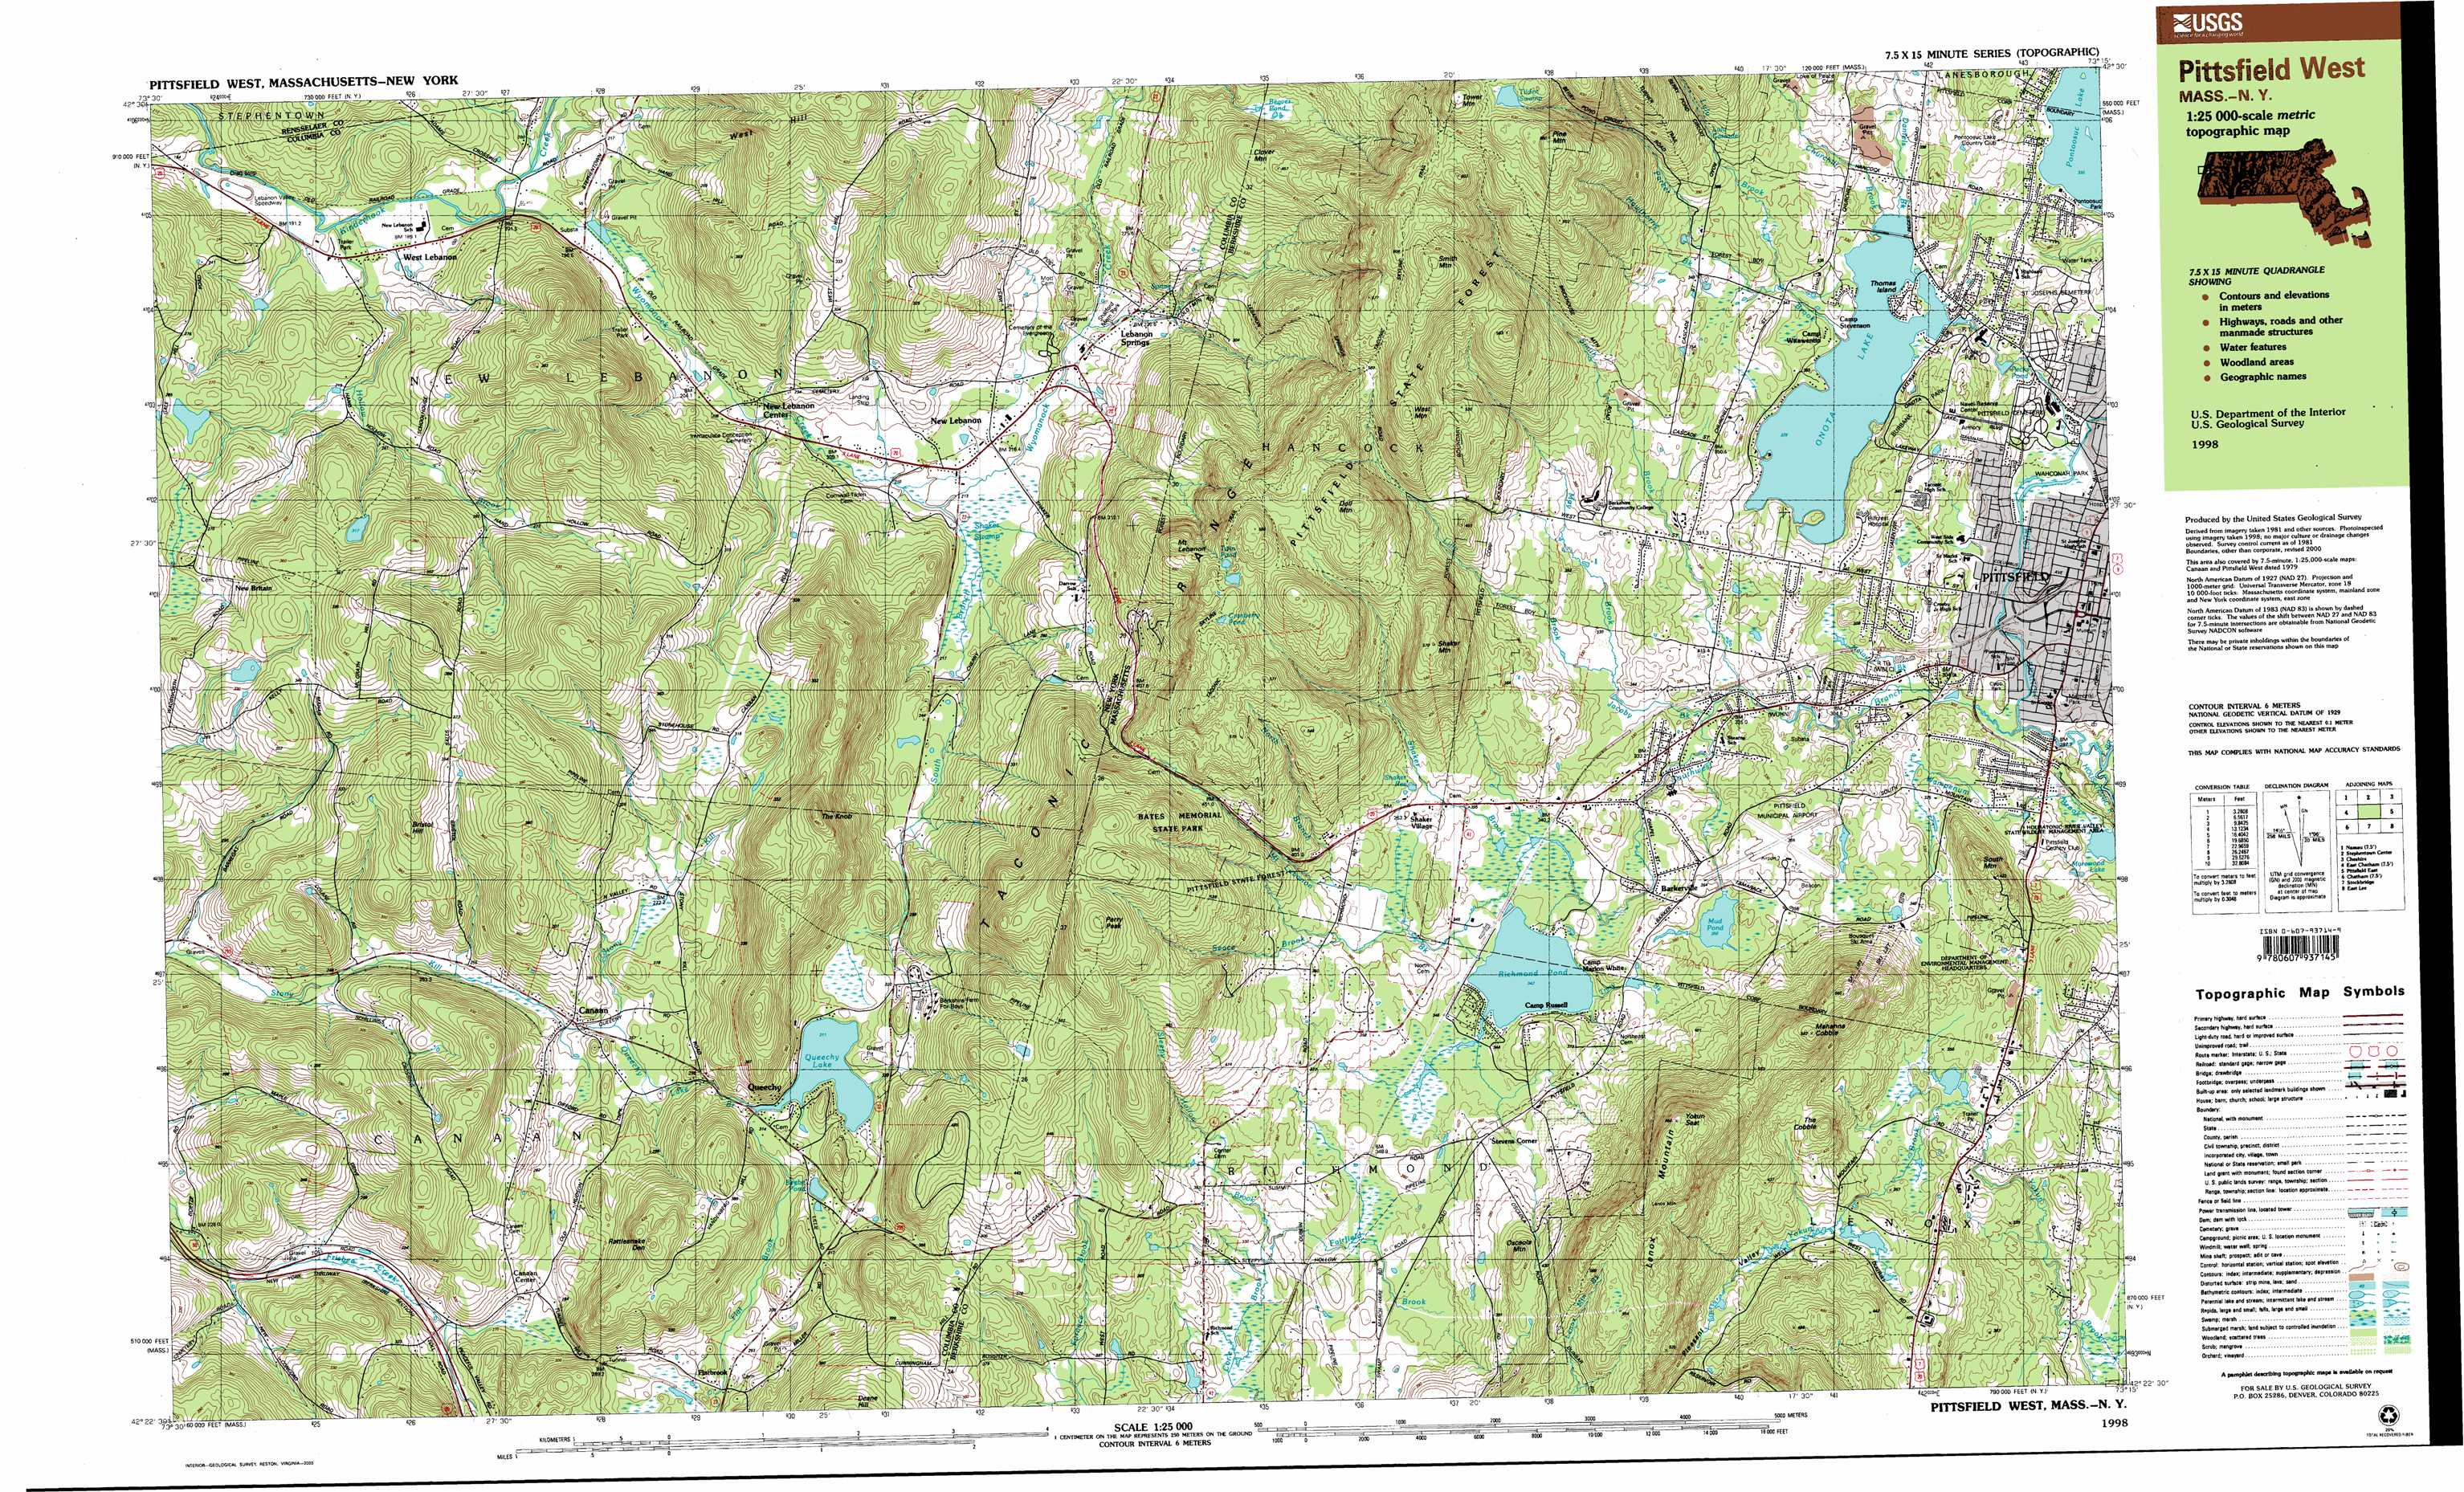 US Topo Maps Pro Android Apps On Google Play US Topo Maps Pro - Us topographic map